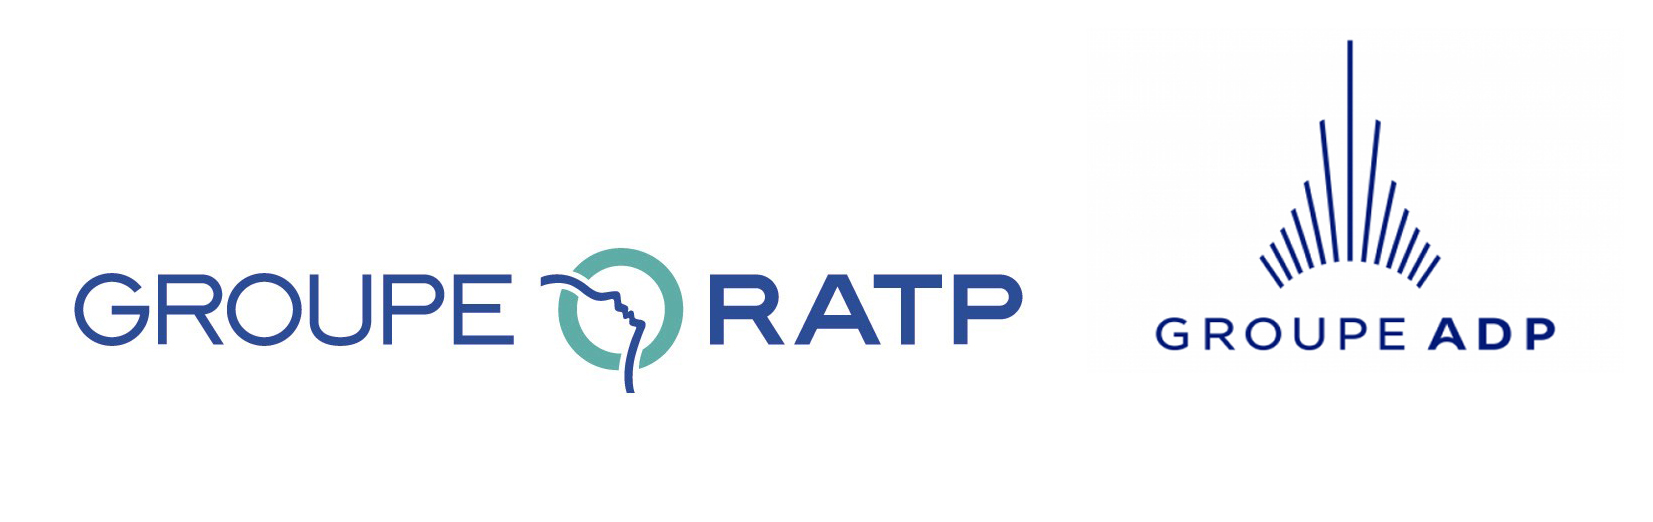 design-stand-groupe-ratp-groupe-adp-agence-narrative